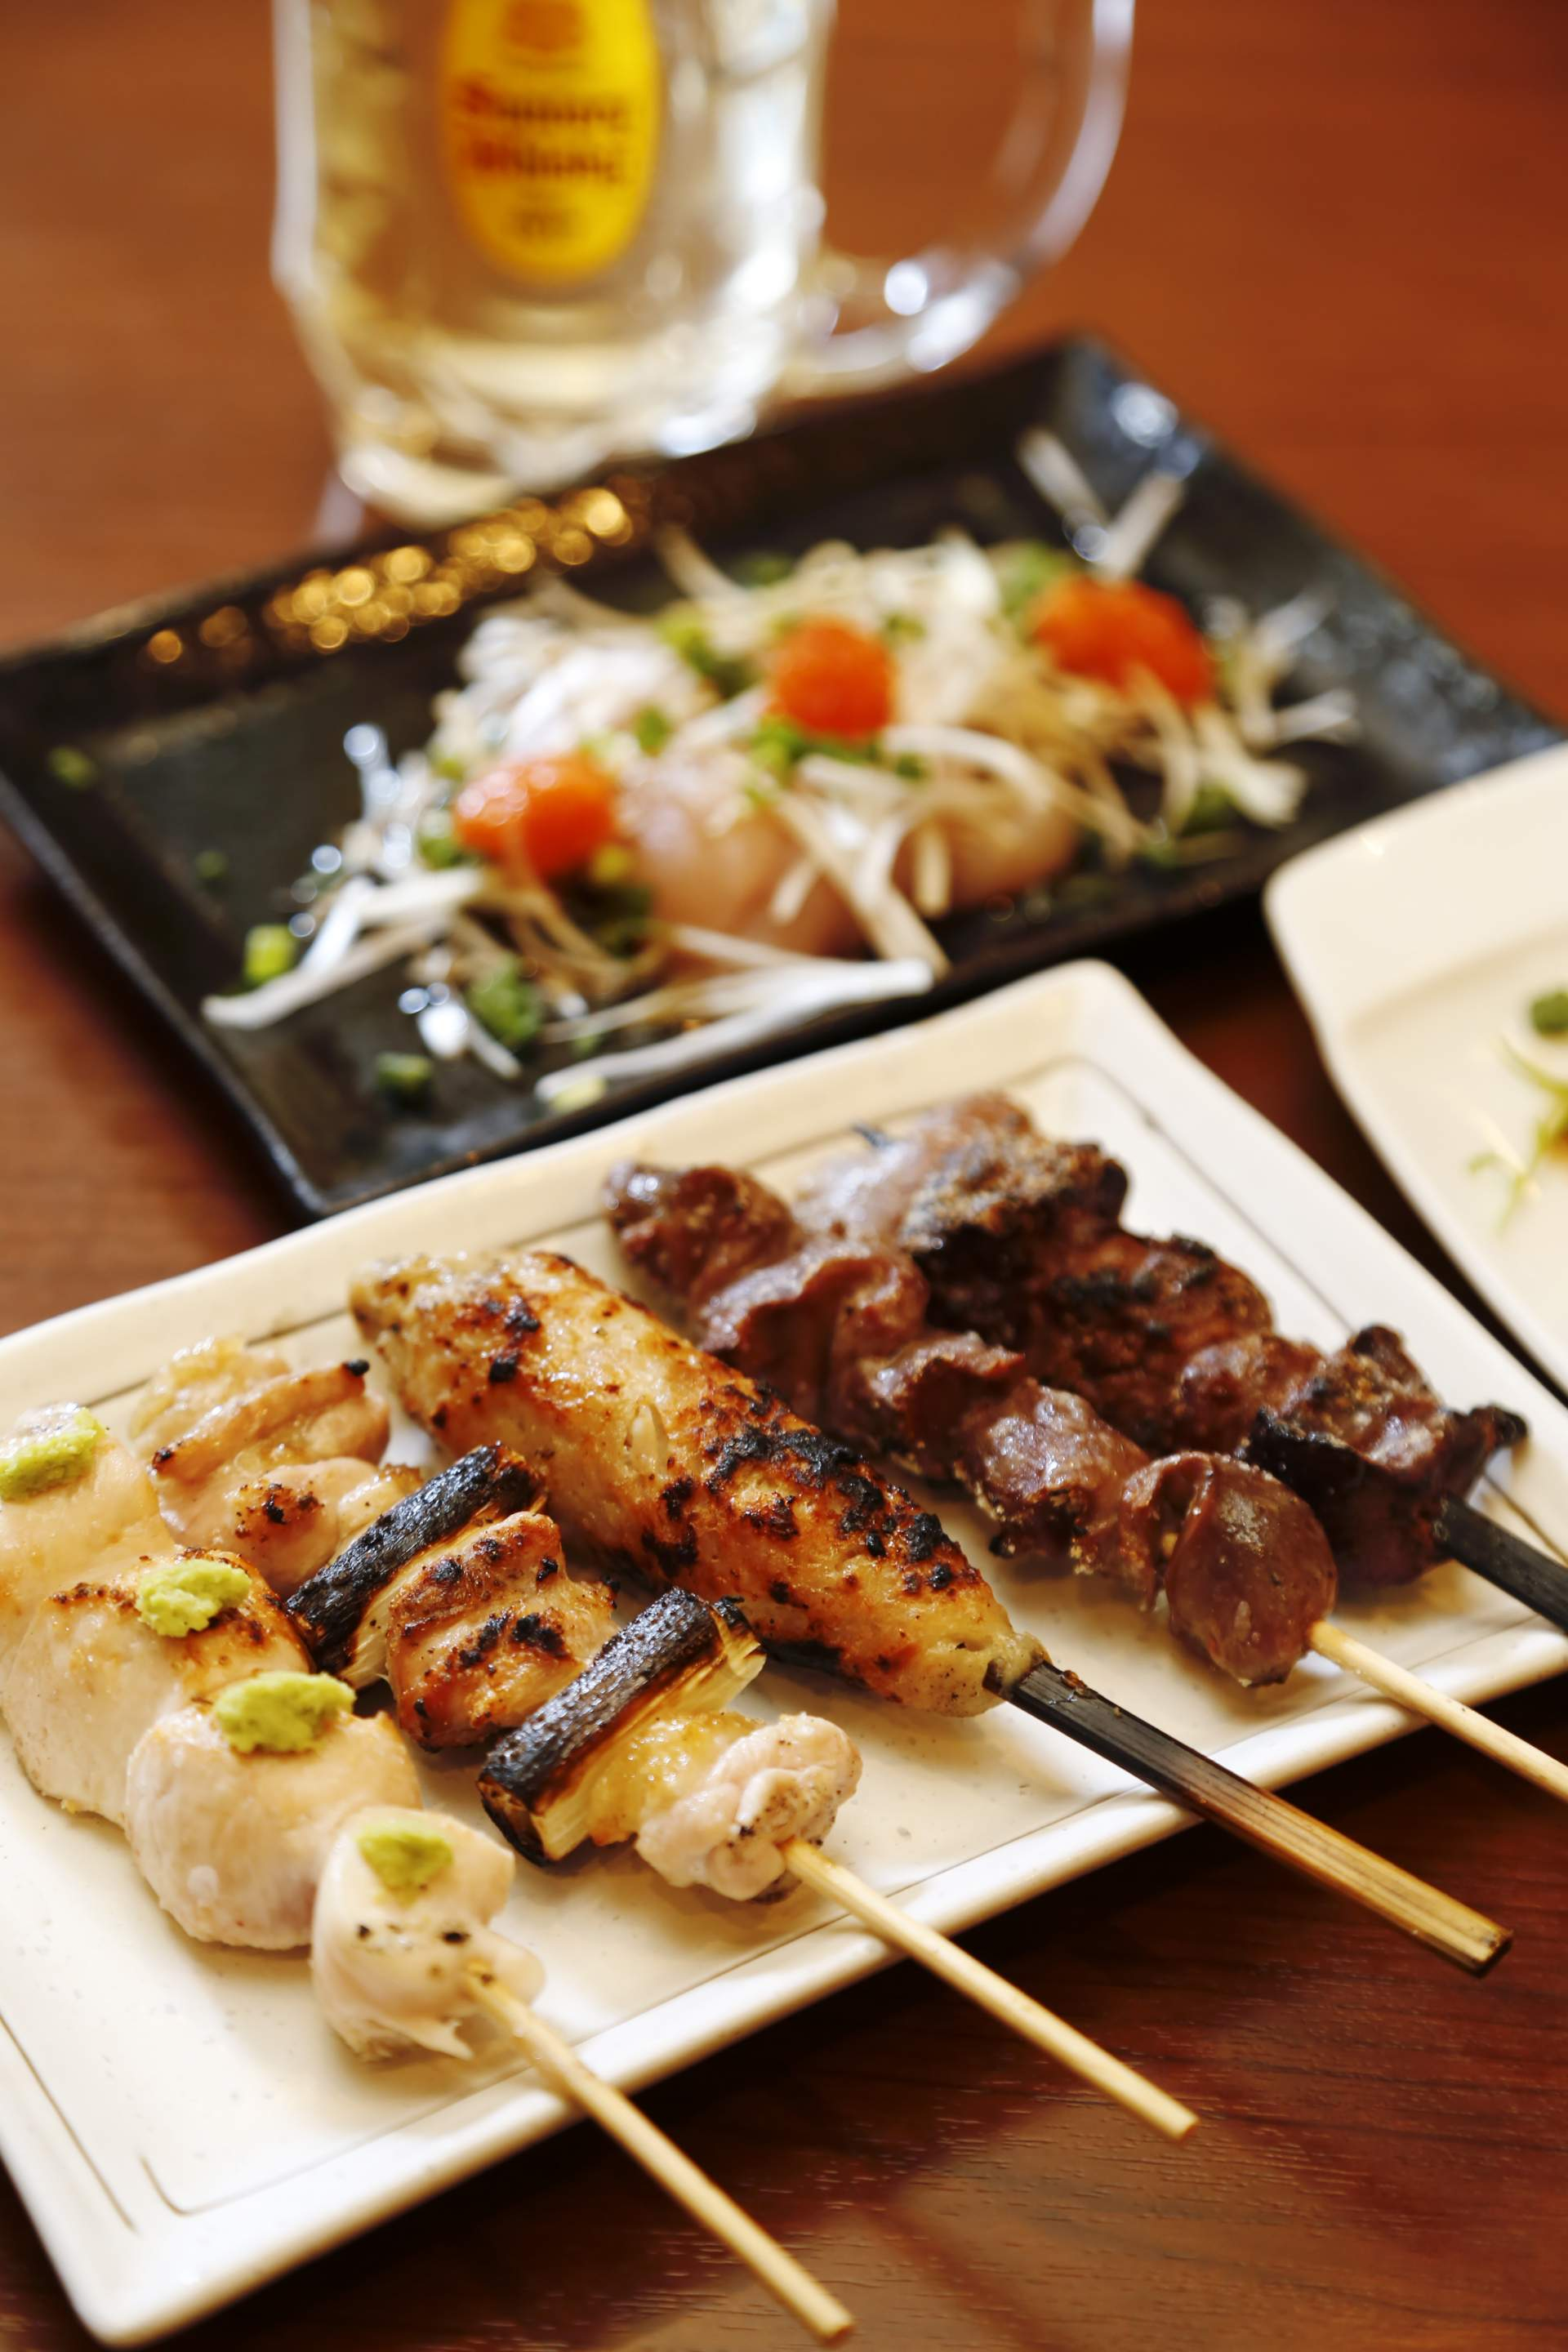 This reasonably-priced yakitori starts at just 130 yen per skewer